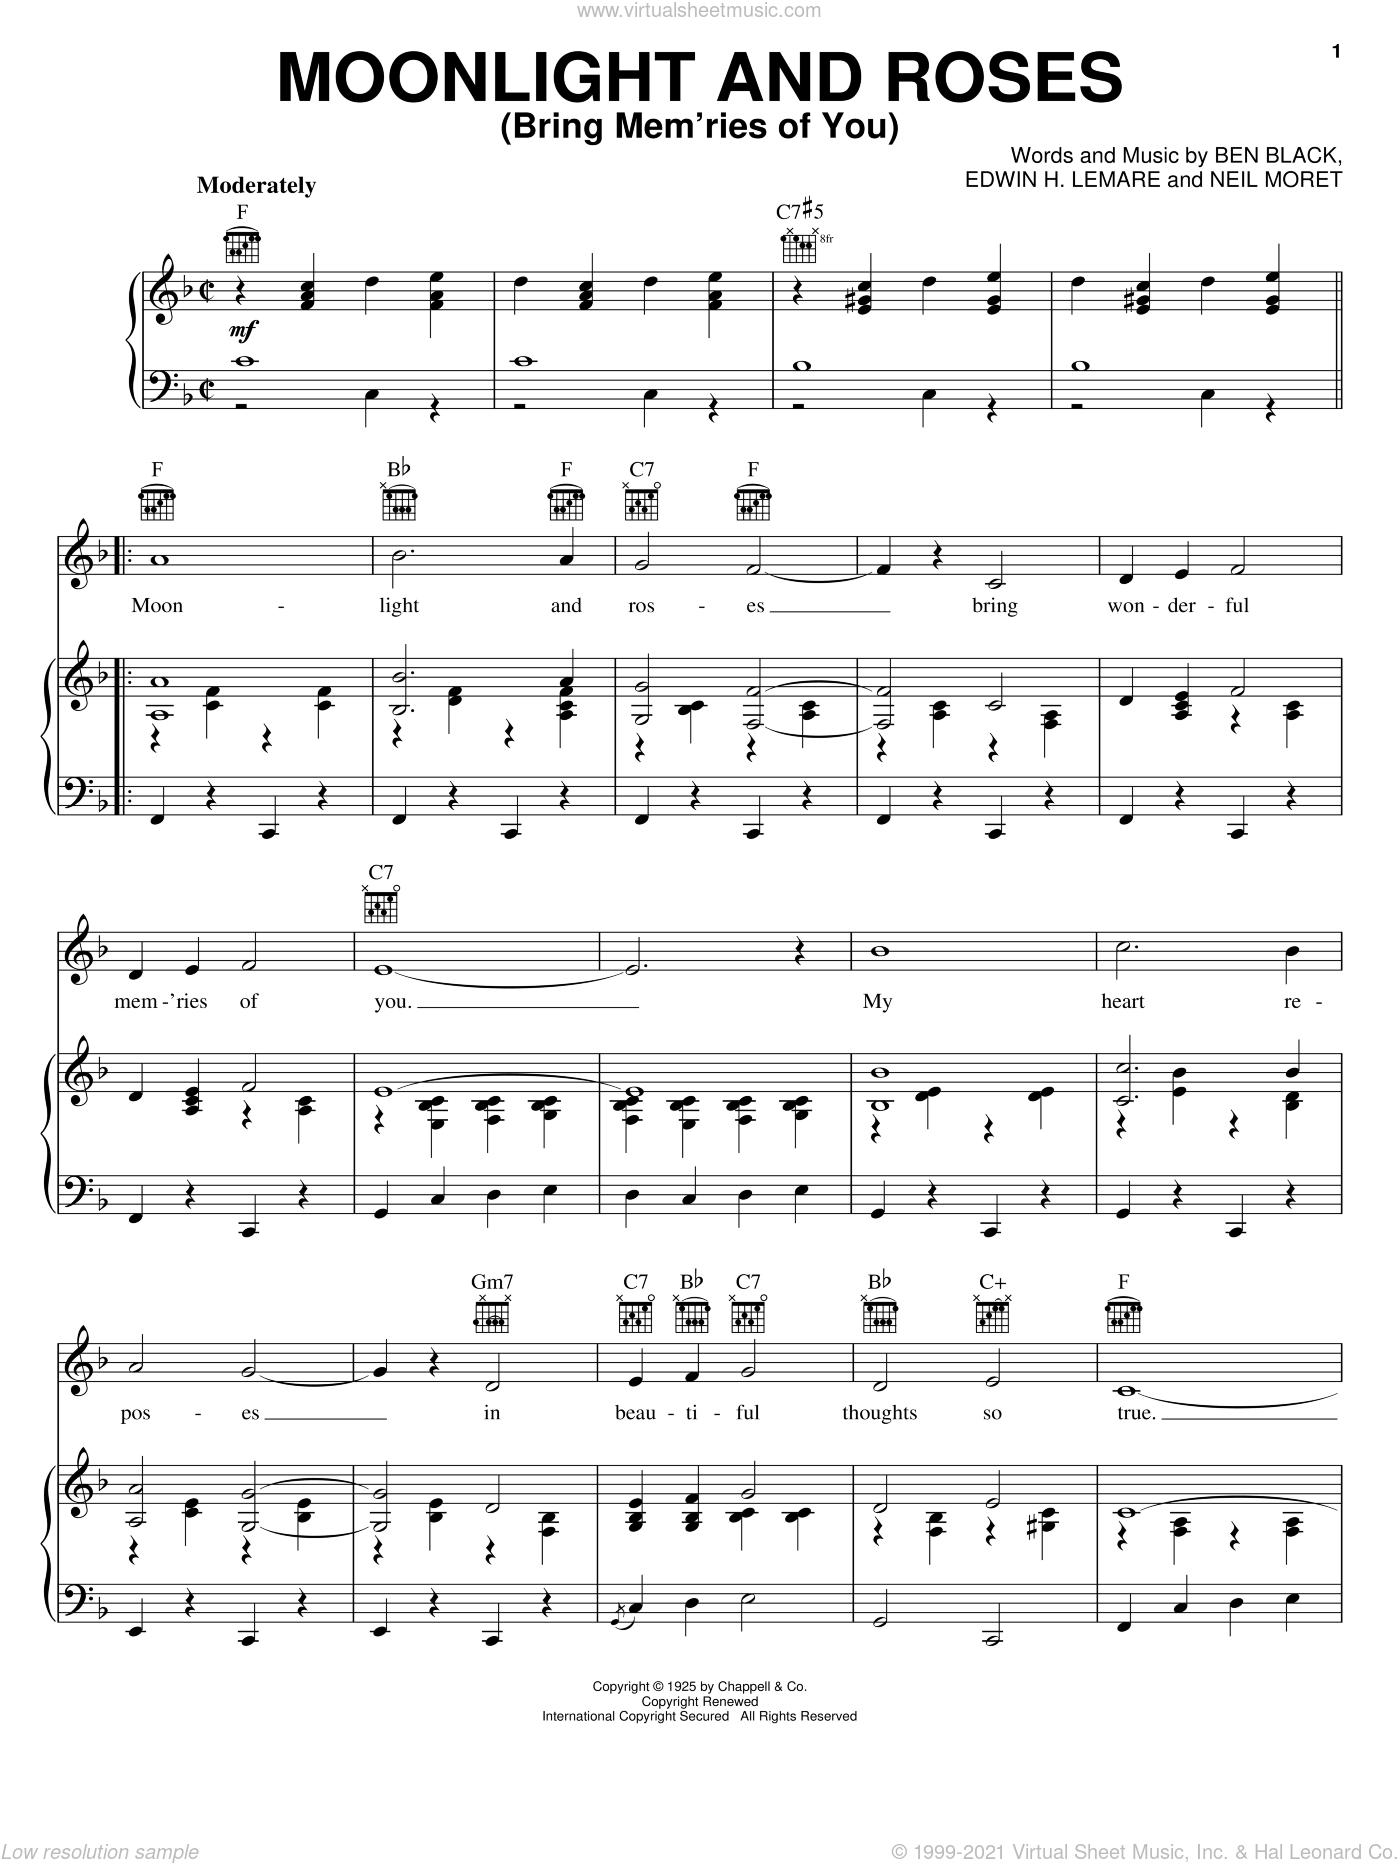 Moonlight And Roses (Bring Mem'ries Of You) sheet music for voice, piano or guitar by Neil Moret